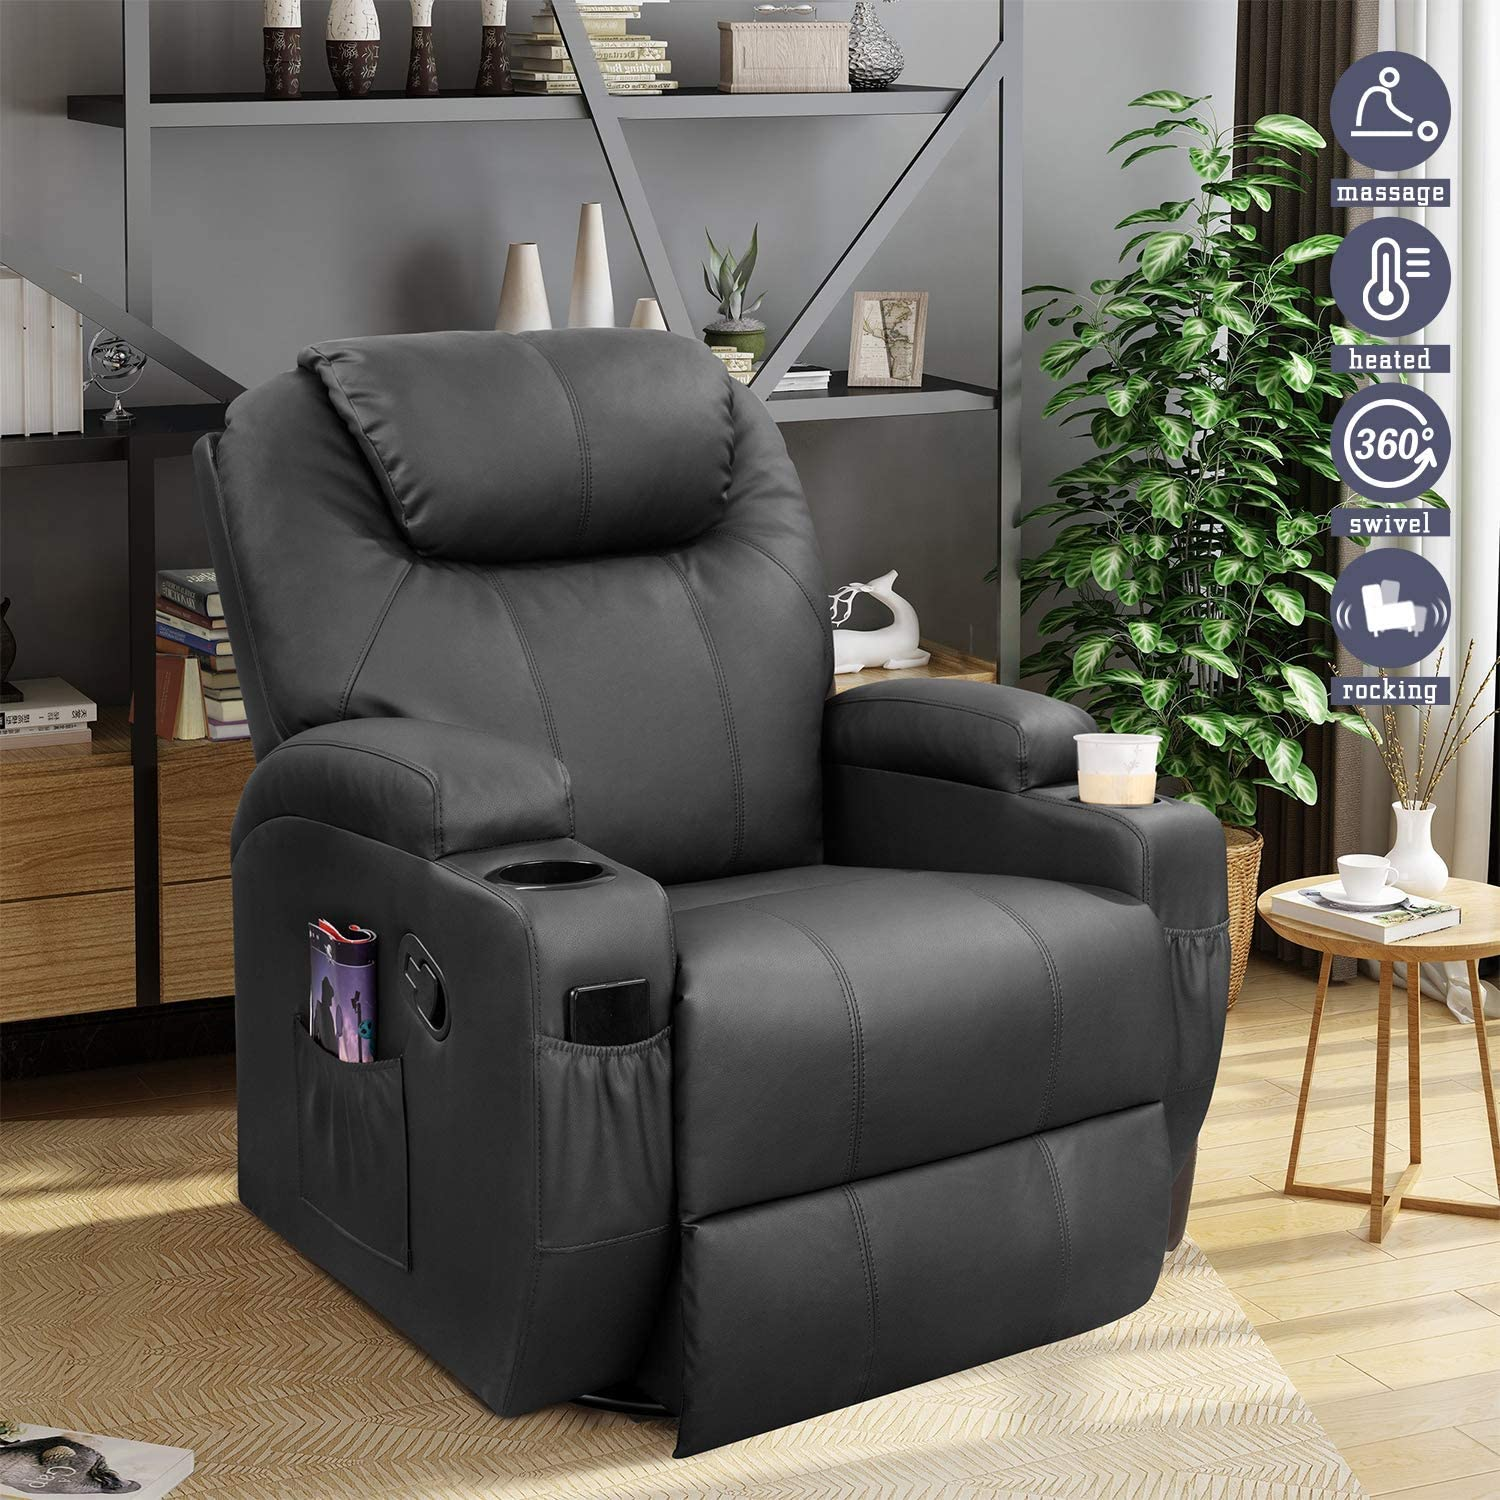 Furniwell Recliner Oversized Chair